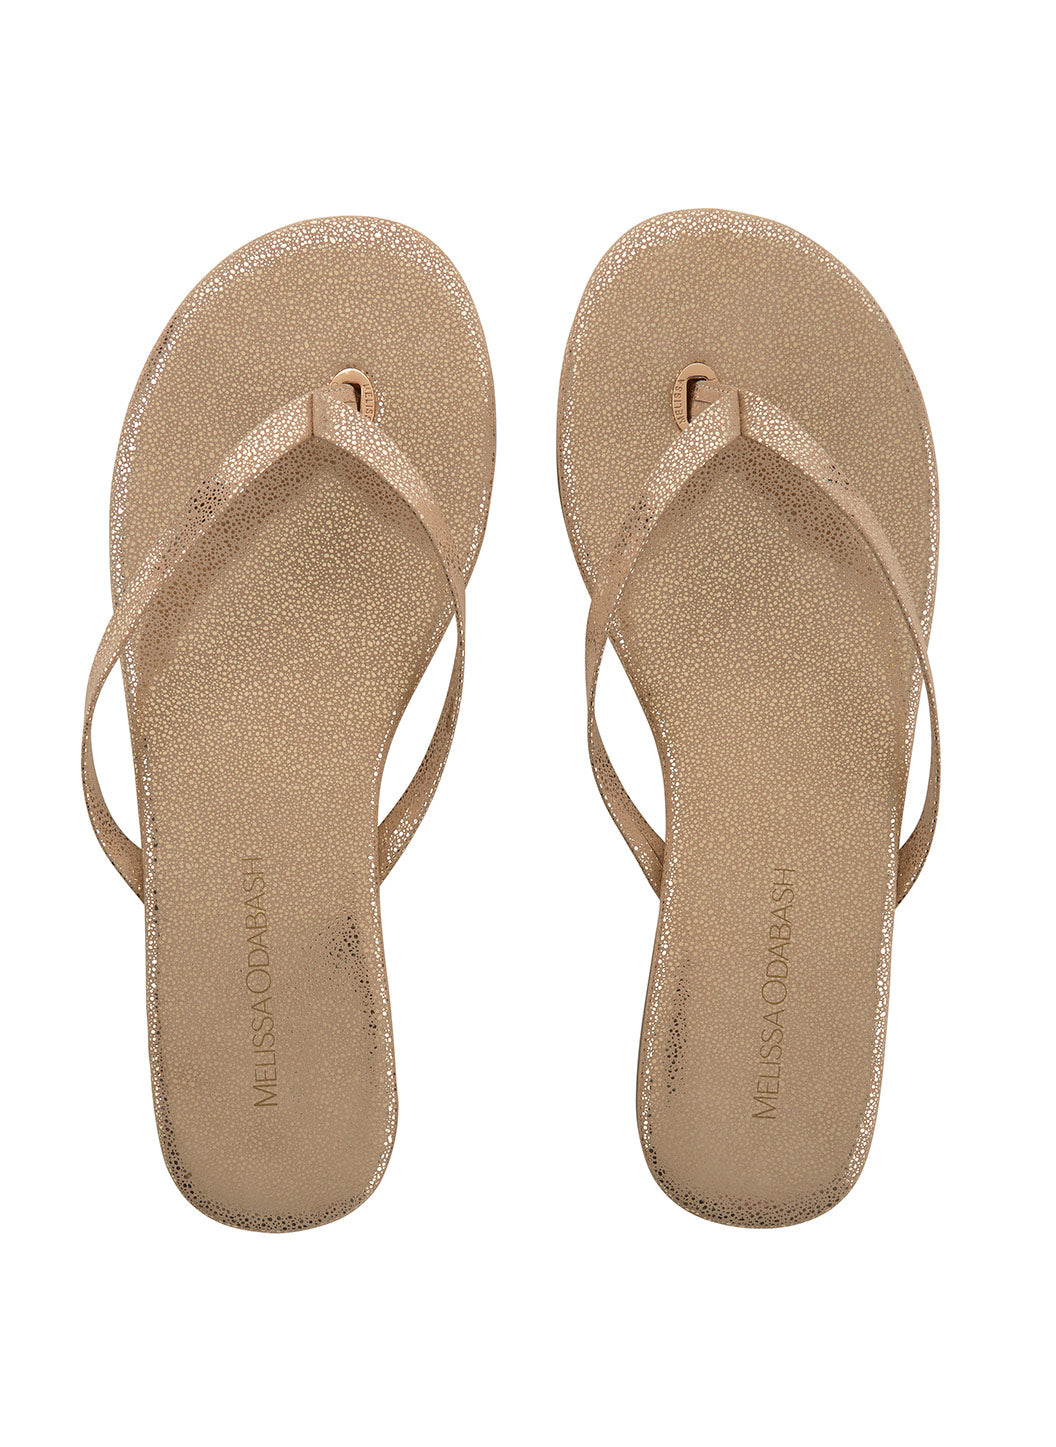 Leather Flip Flops Gold Sparkle